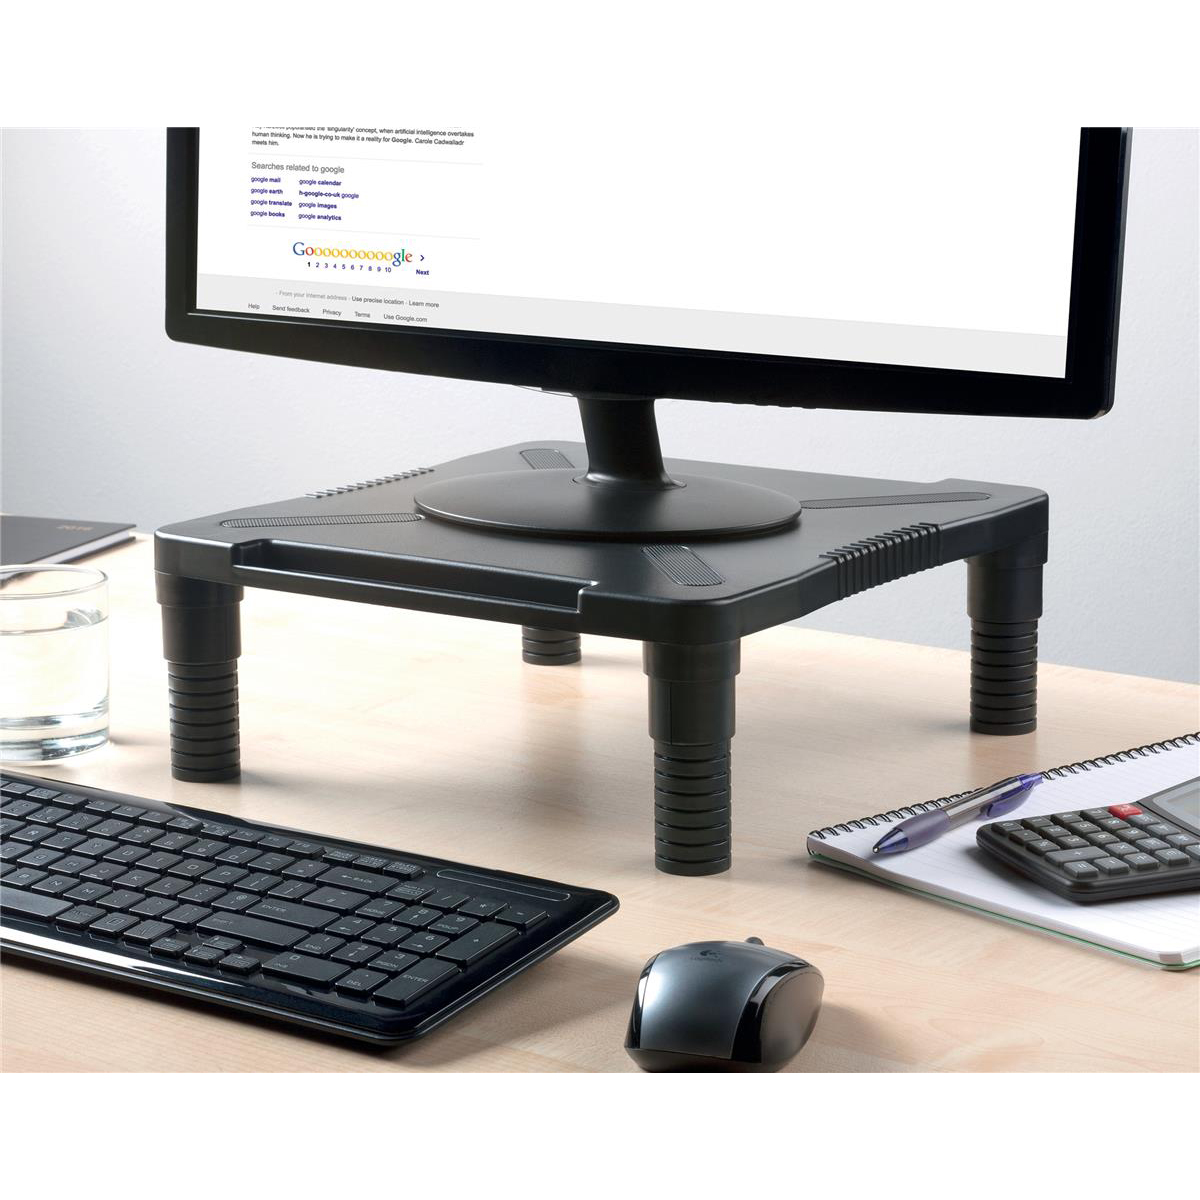 5 Star Office Desktop Smart Stand Adjustable Height Non-skid Platform